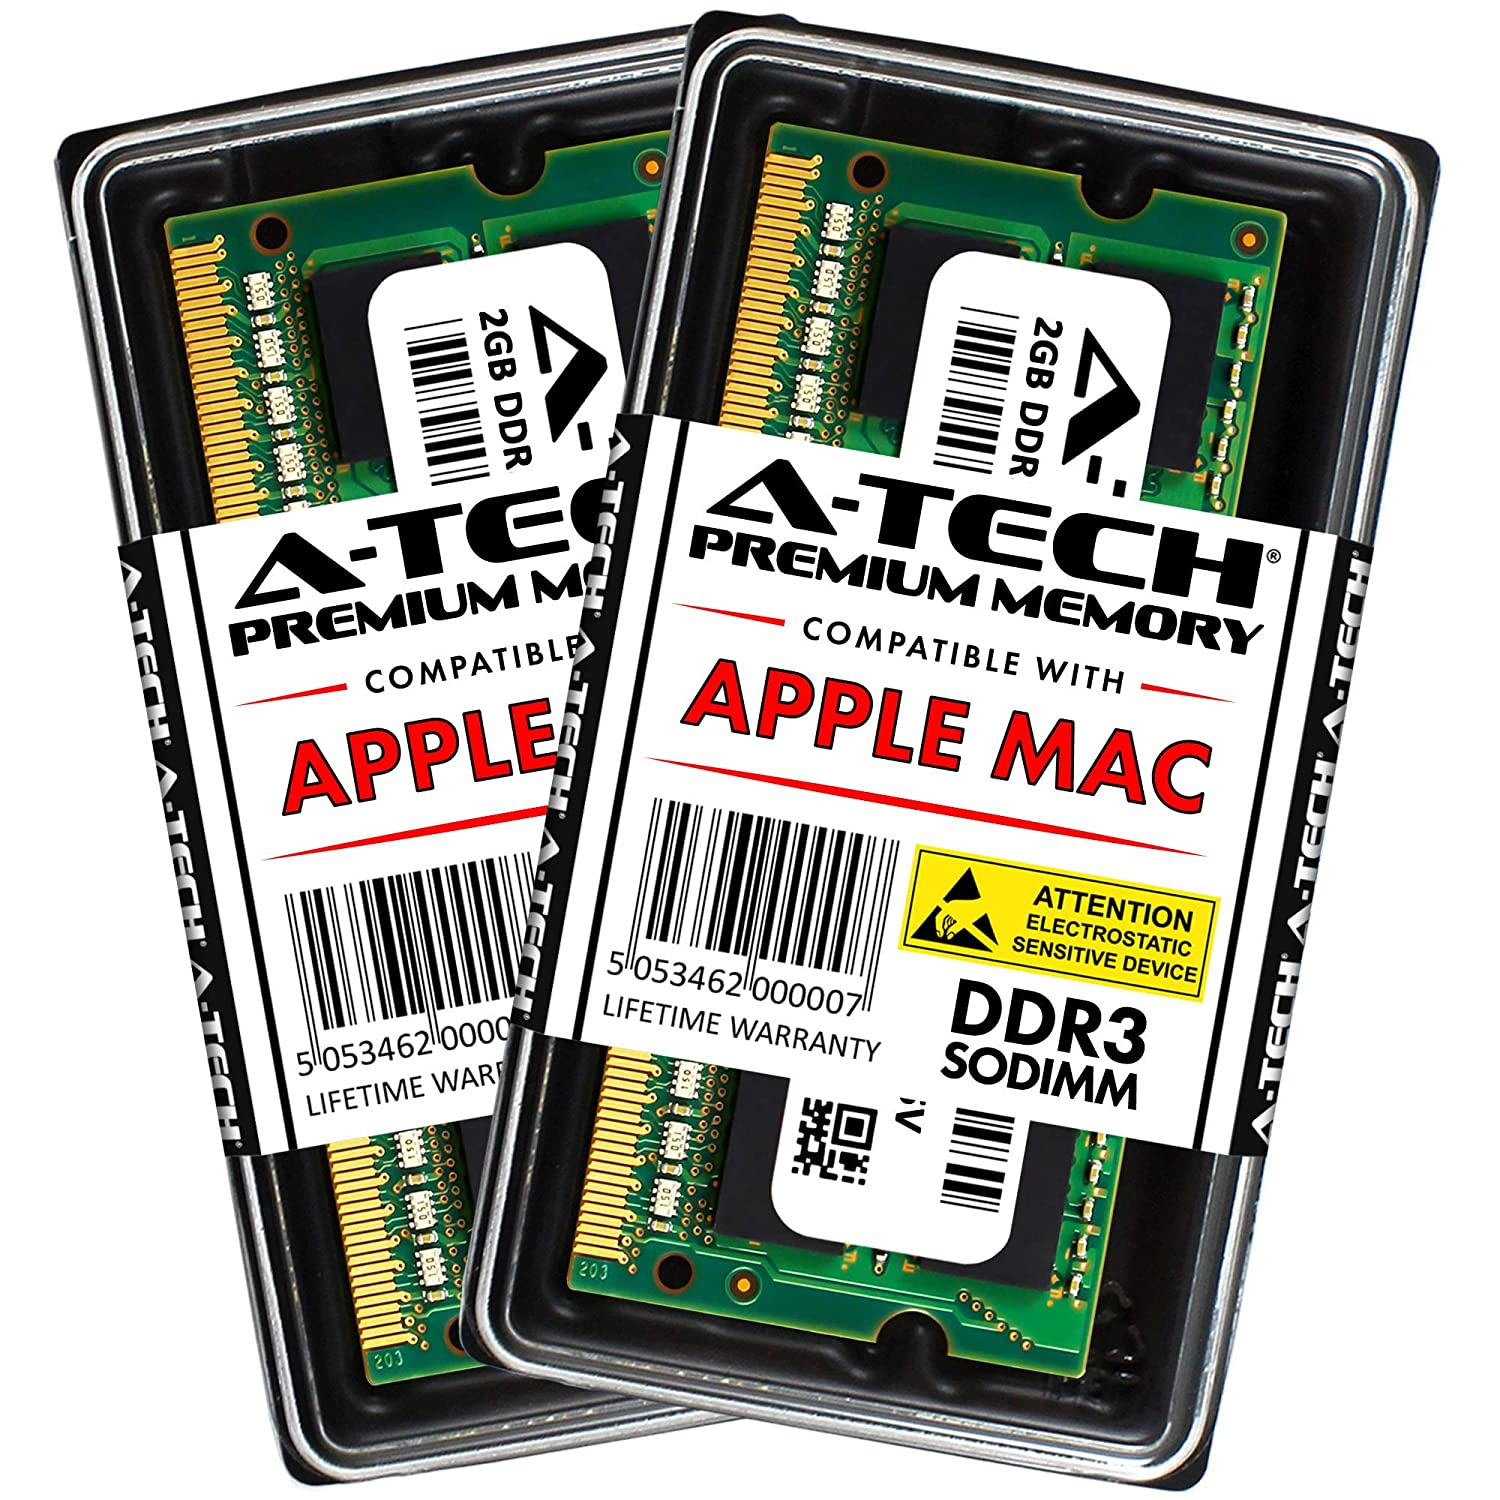 DDR3 1333MHz PC3-10600 SODIMM Memory Ram Upgrade for Apple MacBook Pro Early//Late 2011 13//15//17 inch iMac Mid 2010 Mid//Late 2011 21.5//27 inch Mac Mini Mid 2011 2X 8GB A-TECH for Apple 16GB Kit